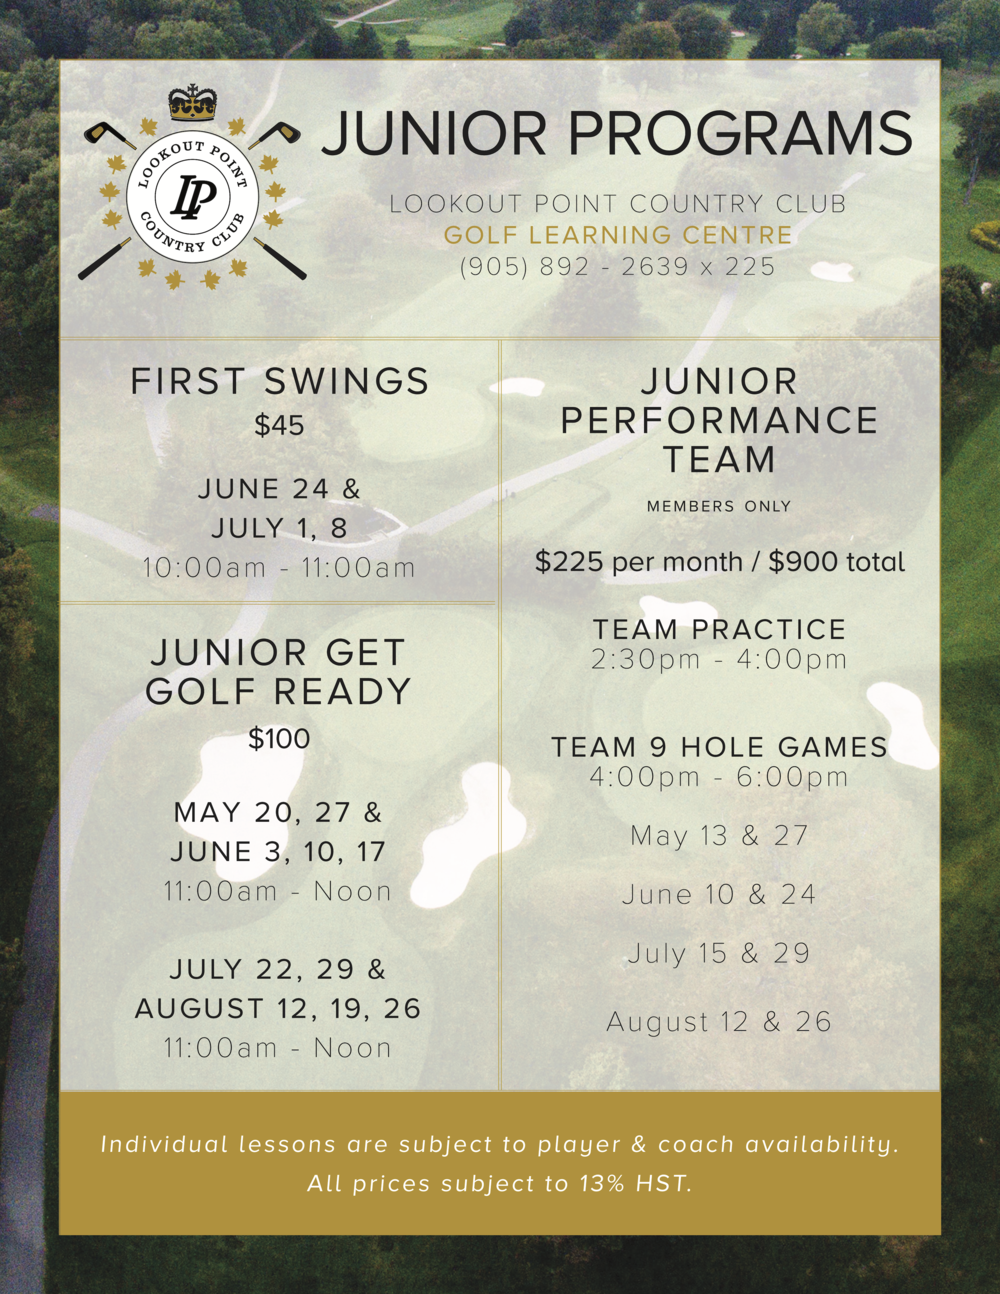 LPCC_UPCOMING_JUNIOR_PROGRAMS_LEARNING_CENTRE_2018_05_02_8_11.png